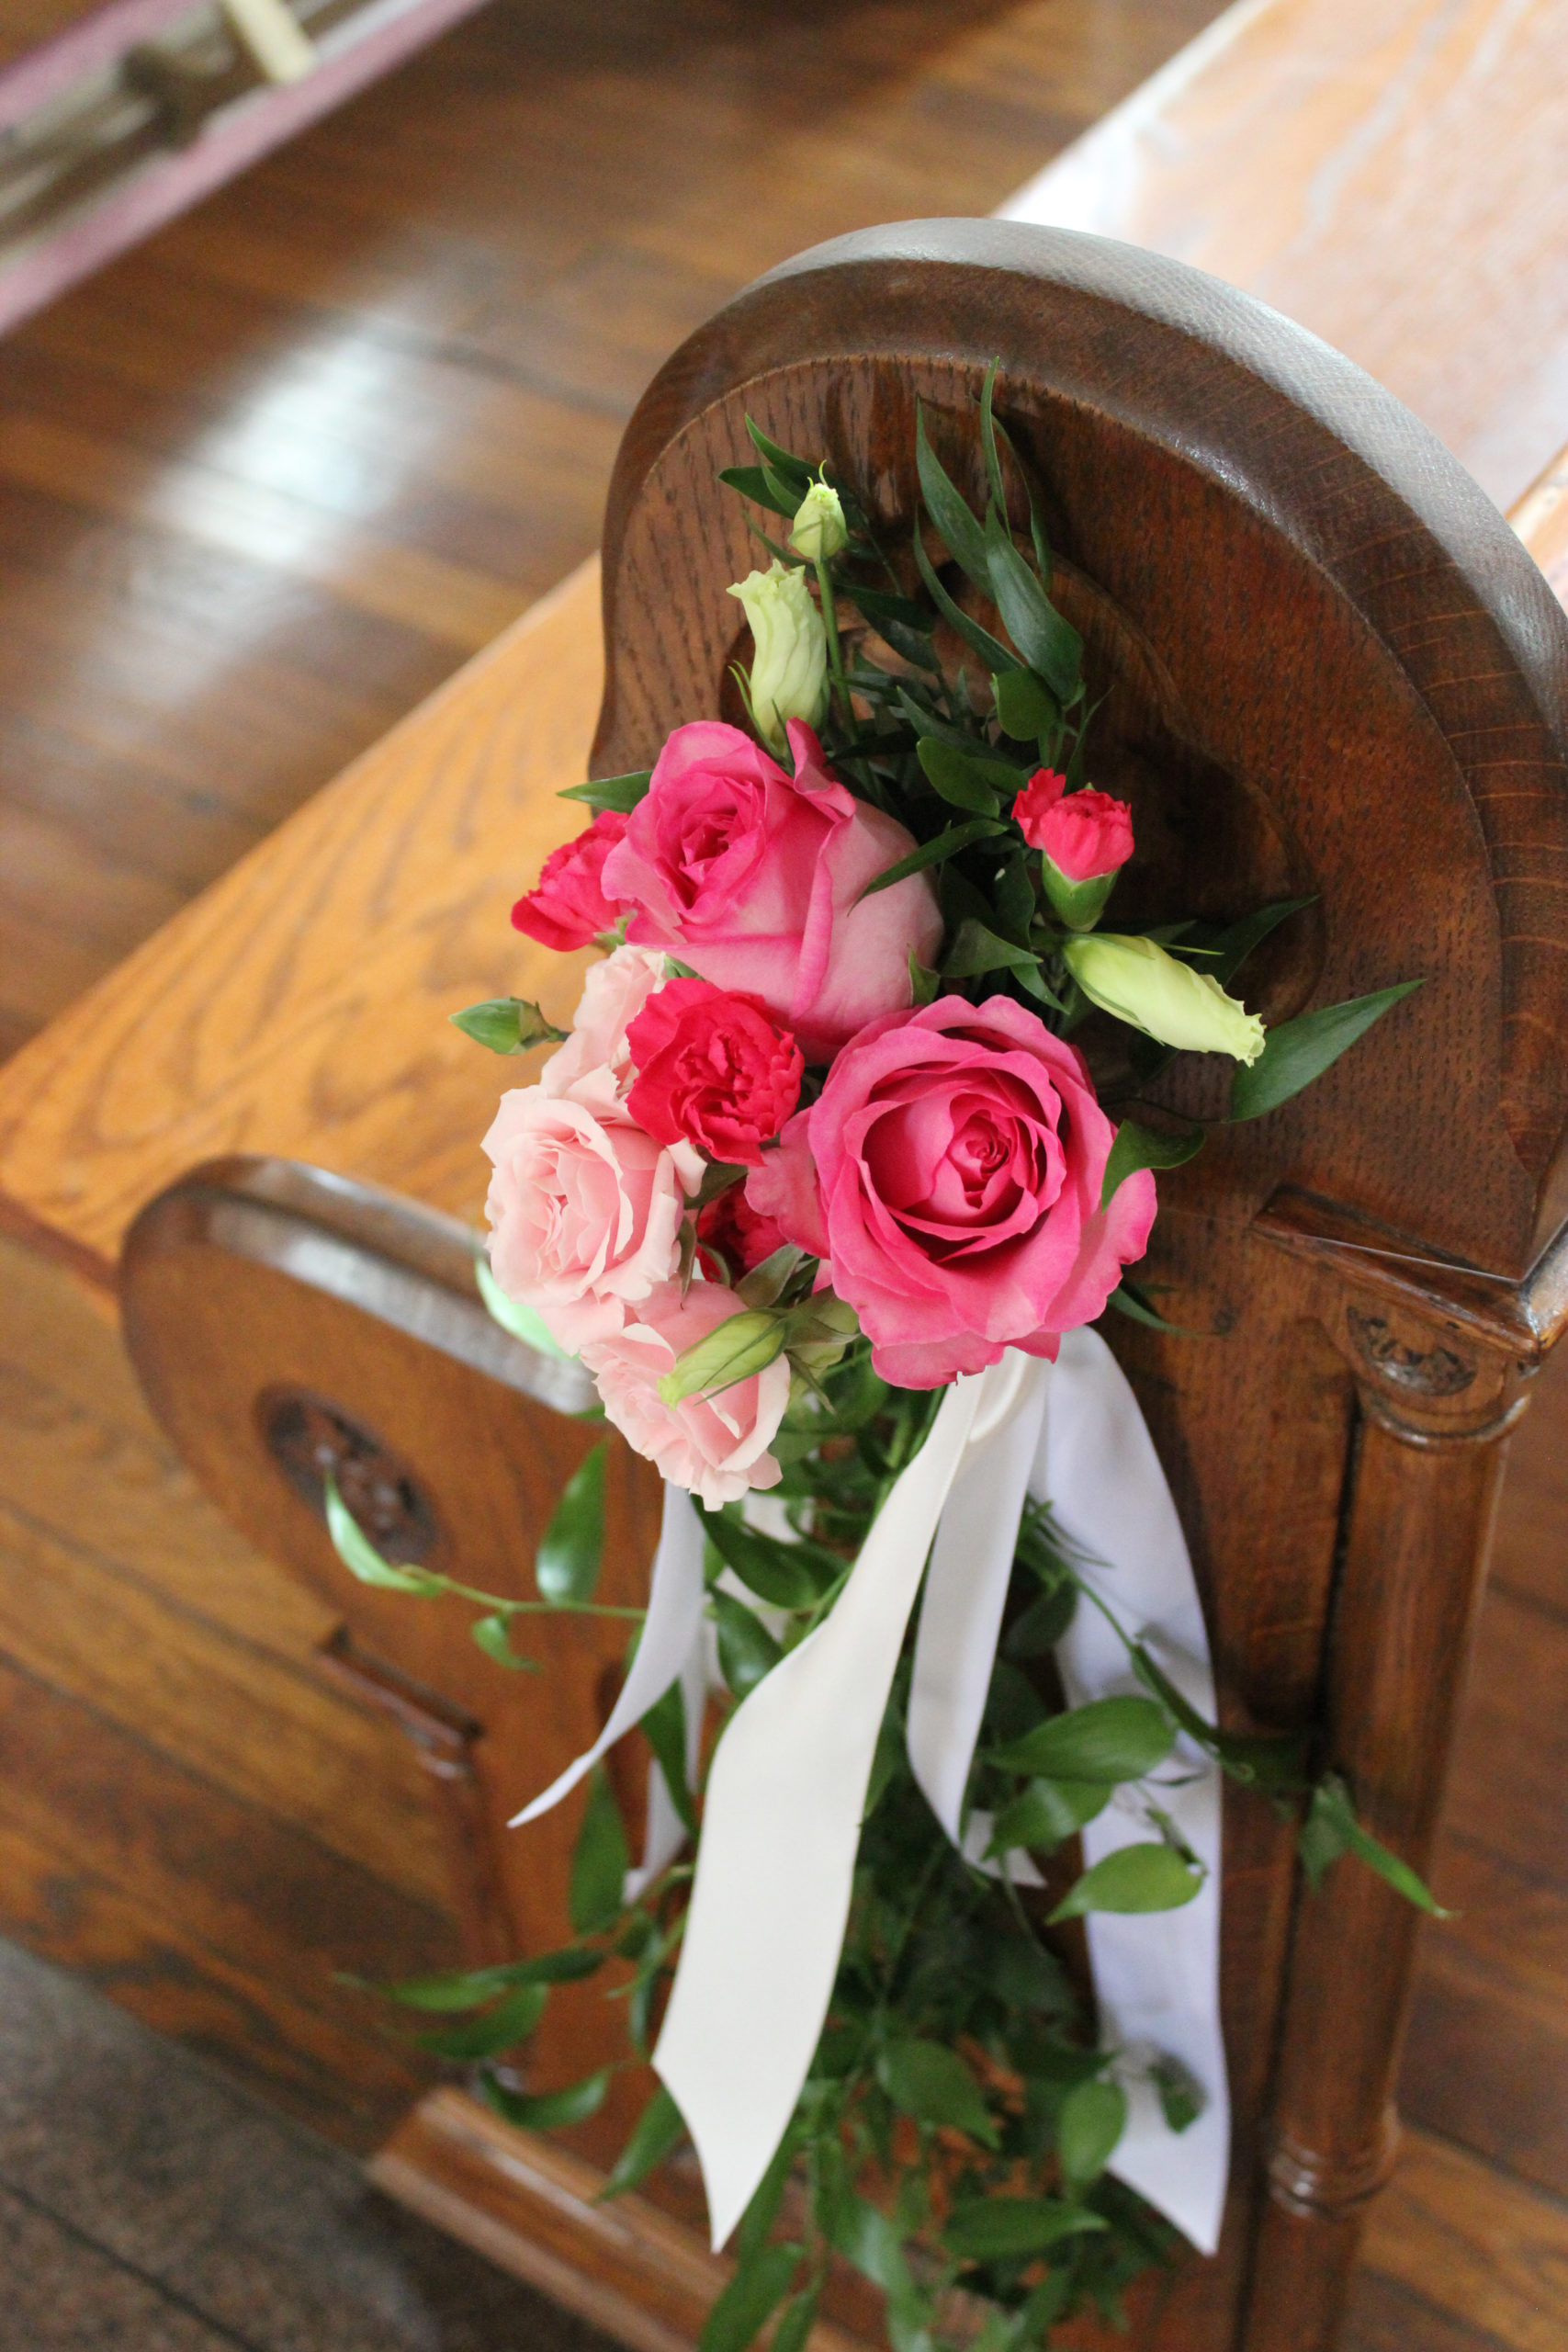 pink flowers added to pews for a wedding at St. Anthony Catholic Church